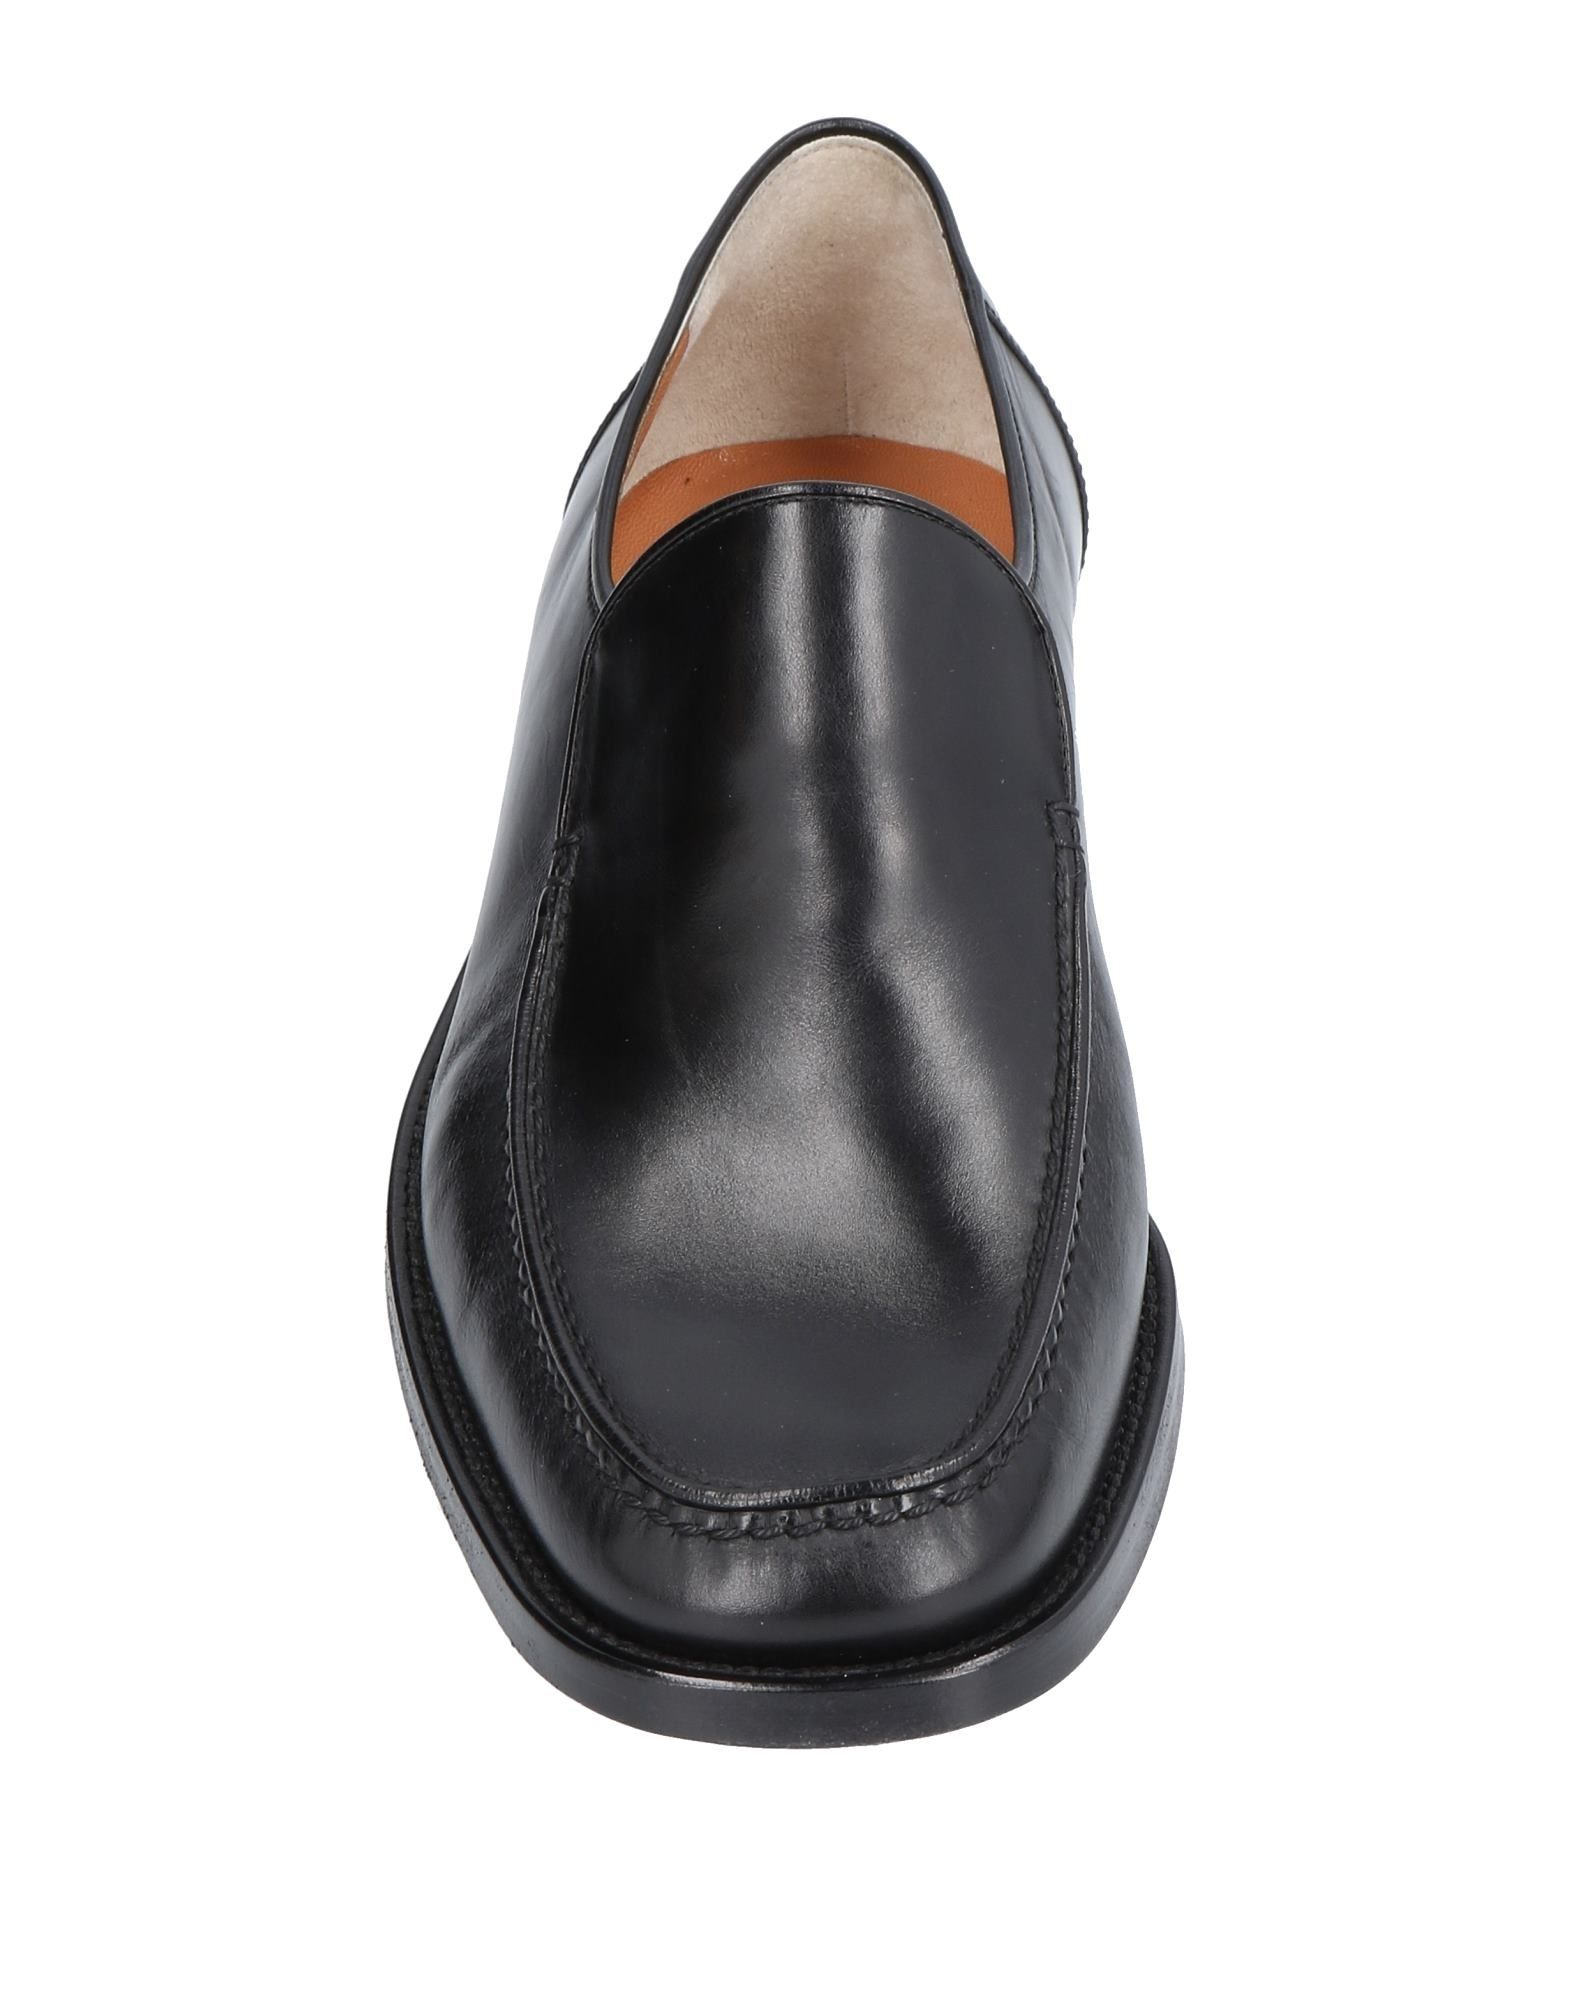 Tonino Caccin Loafers - Men Men Men Tonino Caccin Loafers online on  Canada - 11472069DC 54907f